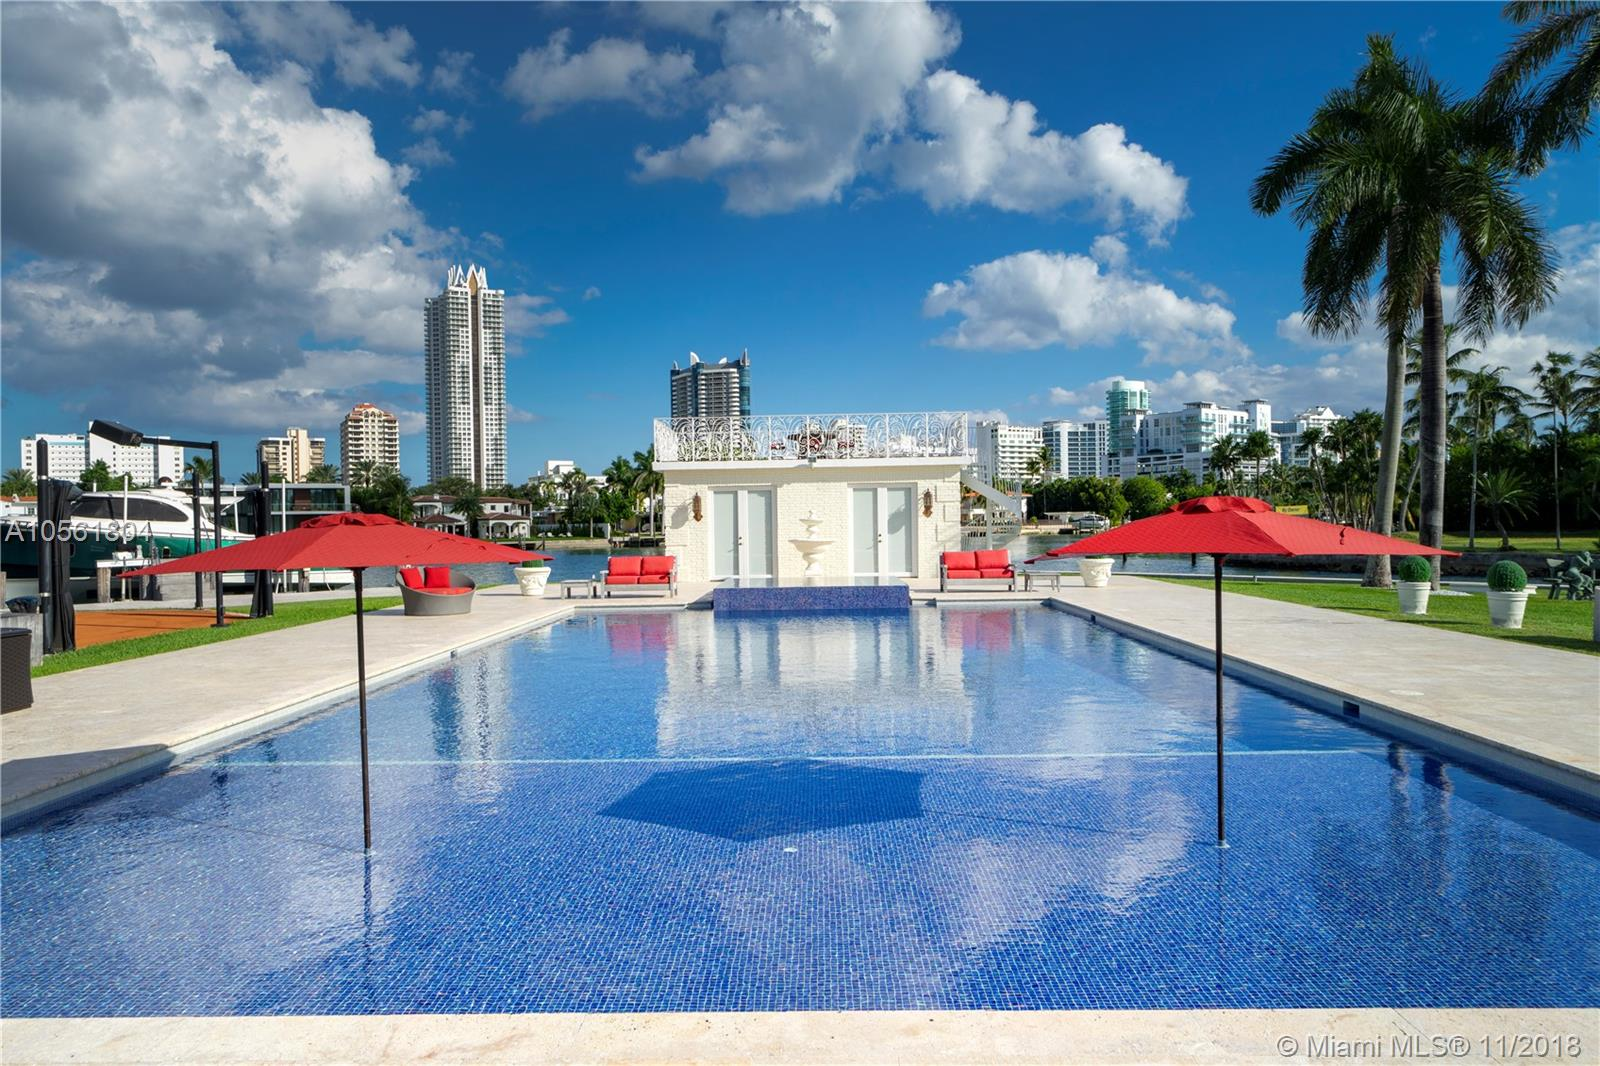 100 La gorce circle- miami-beach-fl-33141-a10561804-Pic12